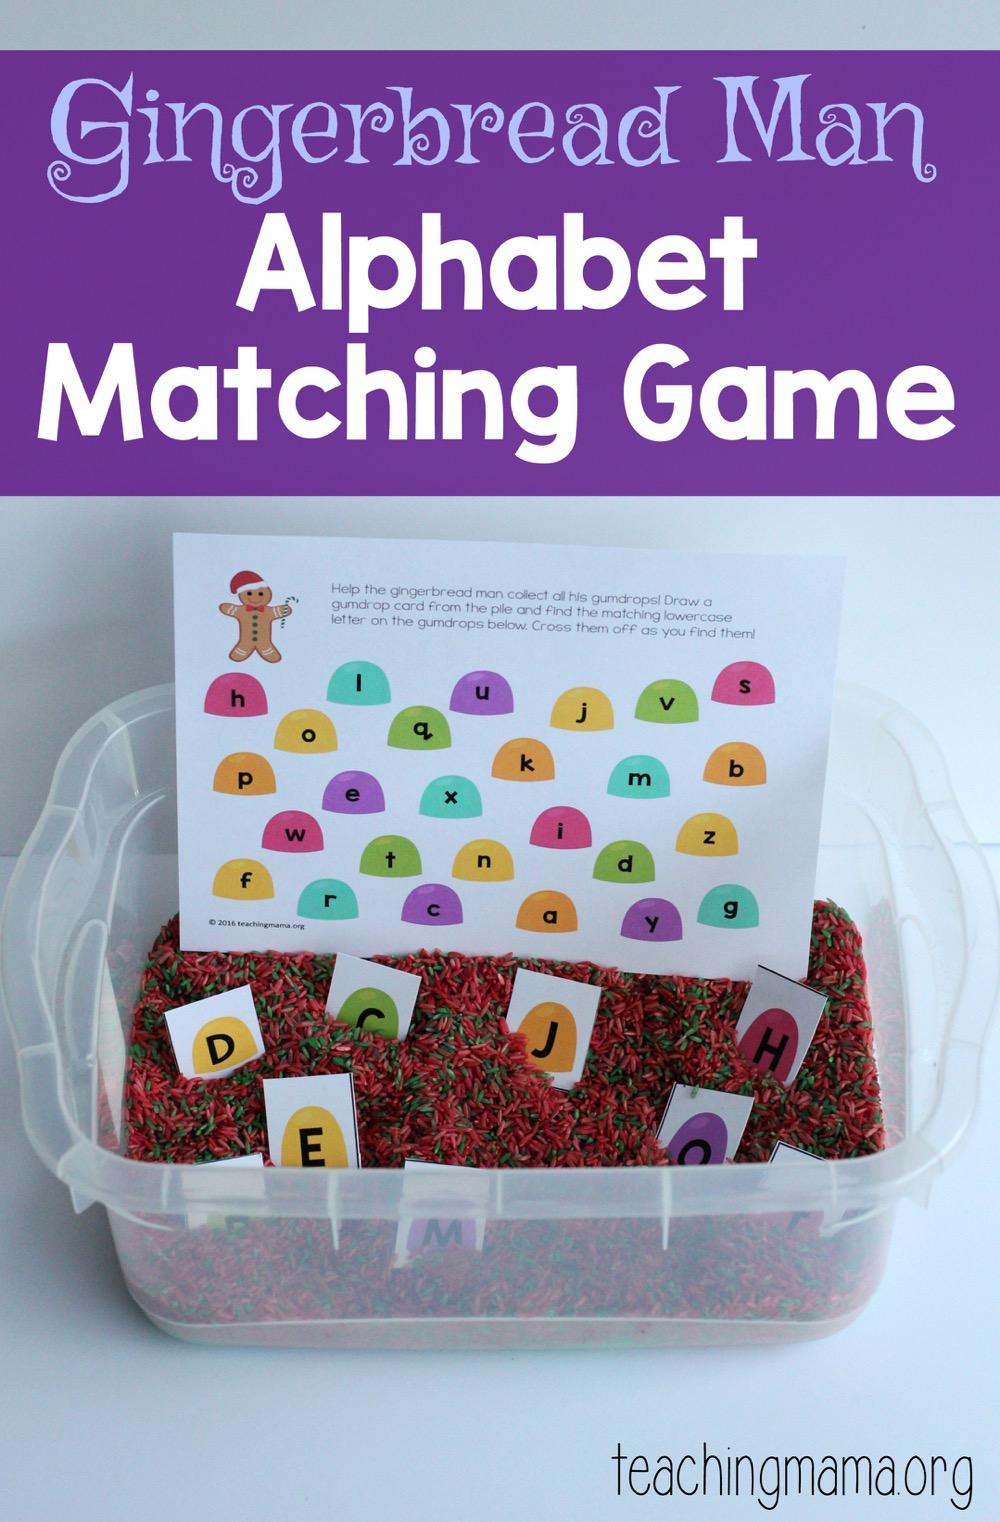 Gingerbread Man Alphabet Matching Game